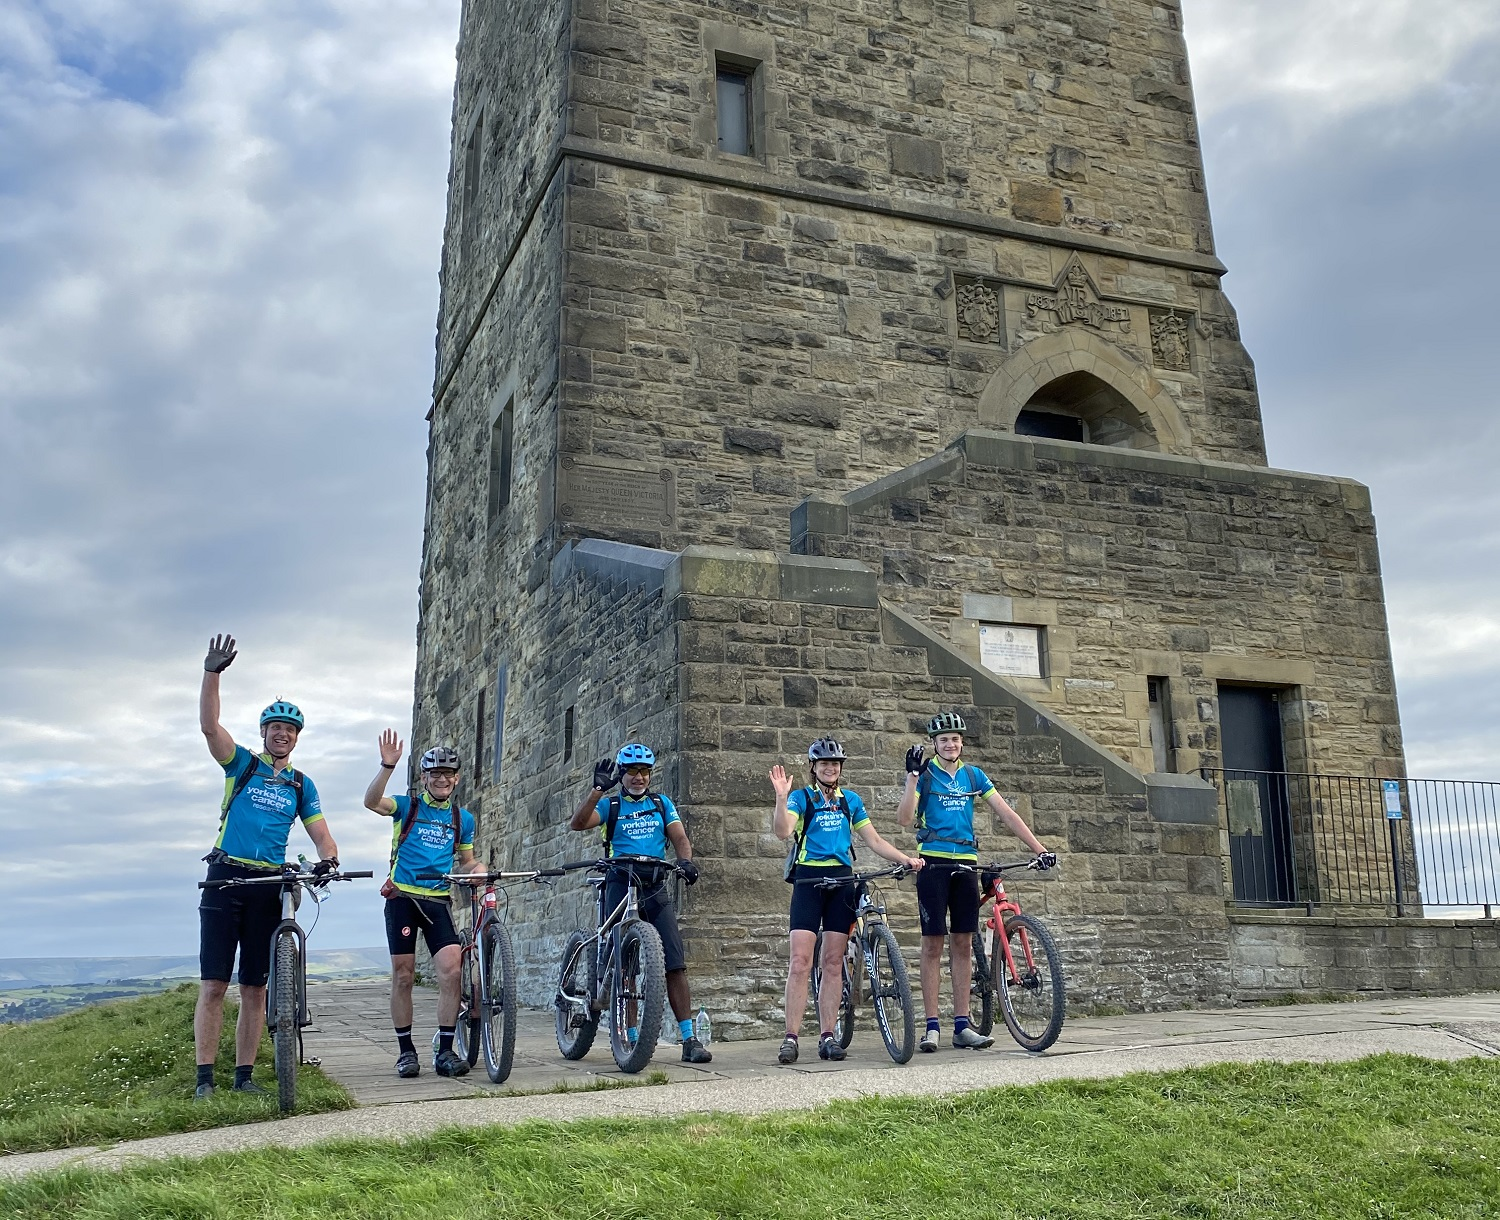 Stadium Riders complete 80-mile cycling challenge